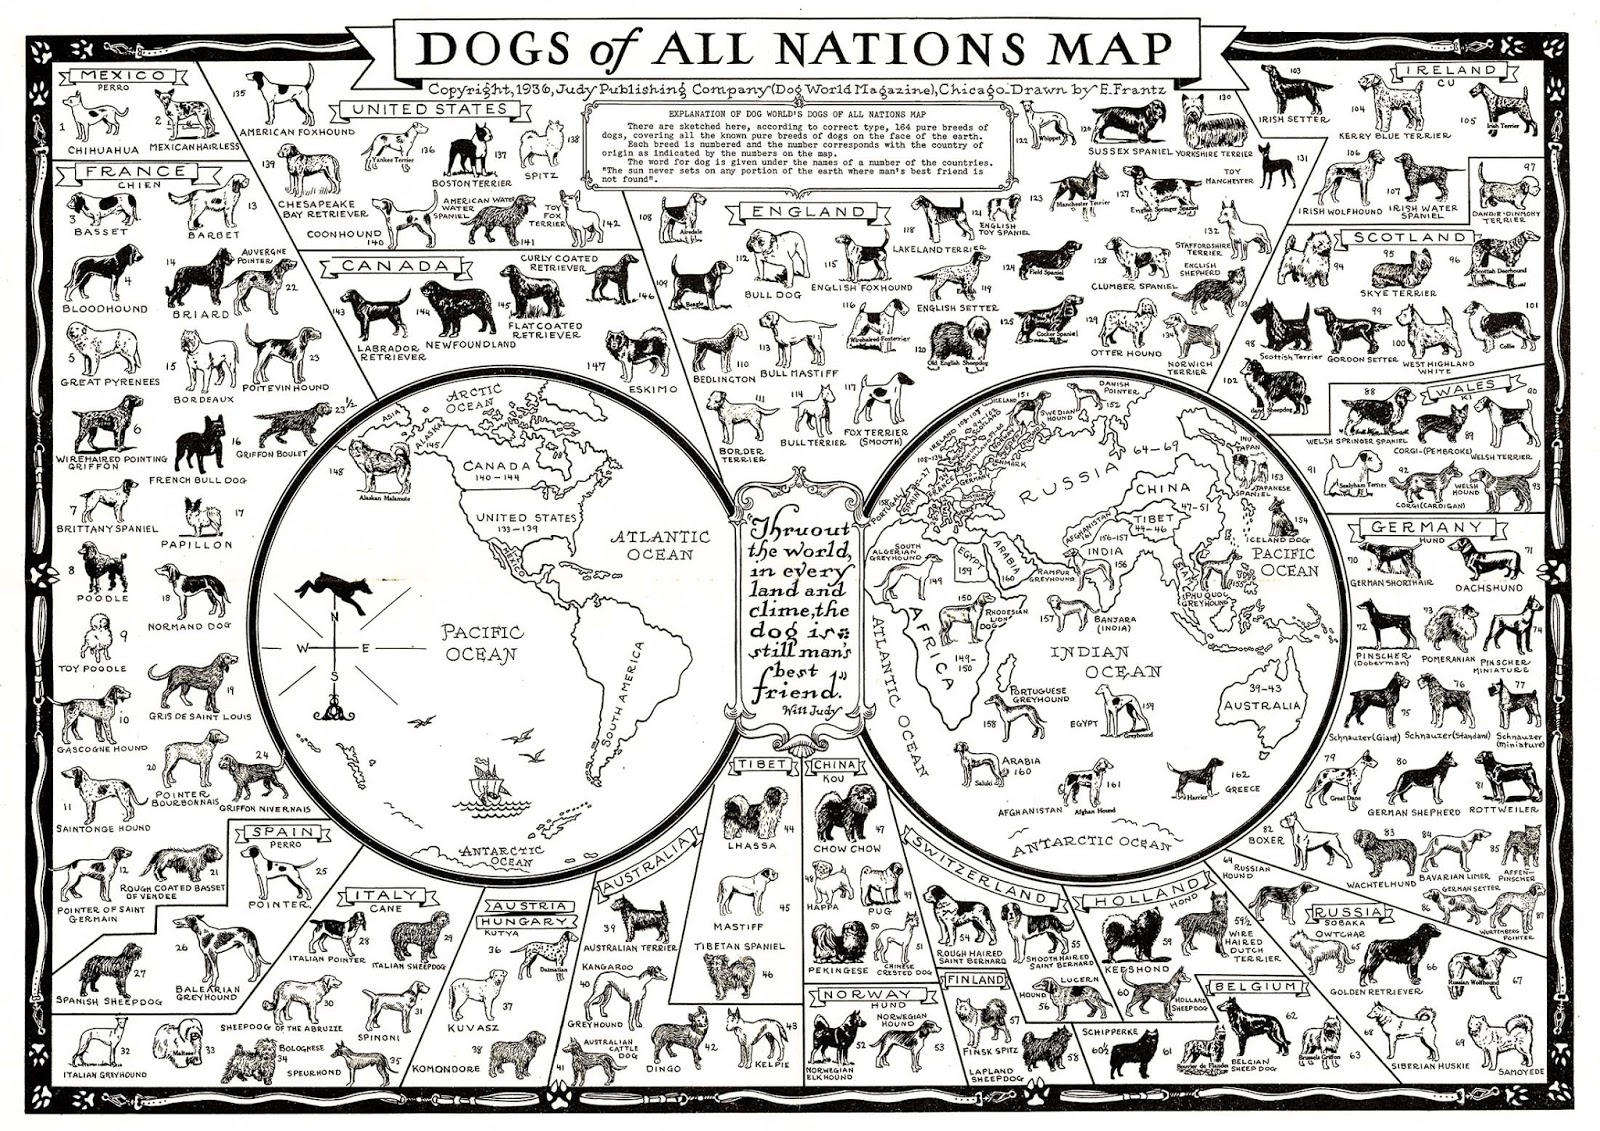 Dogs of all nations map